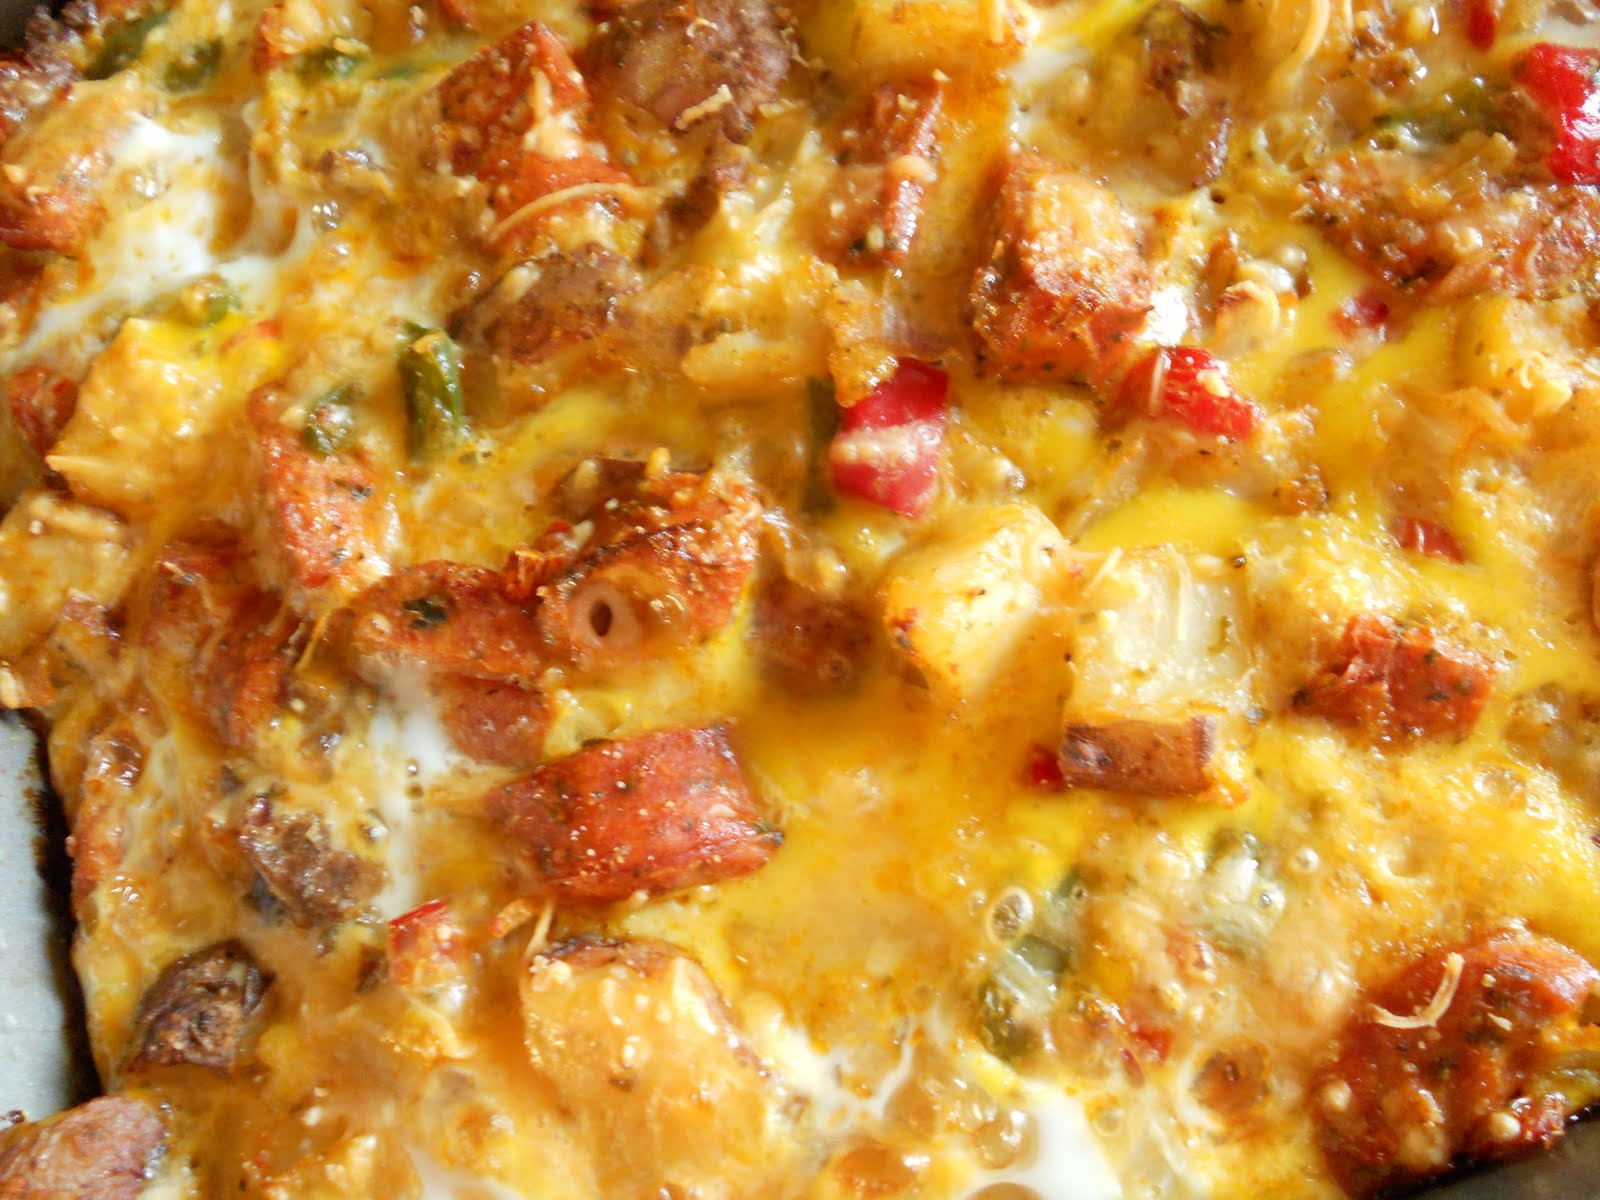 Egg And Sausage Breakfast Casserole - Easy Breakfast Egg Casserole